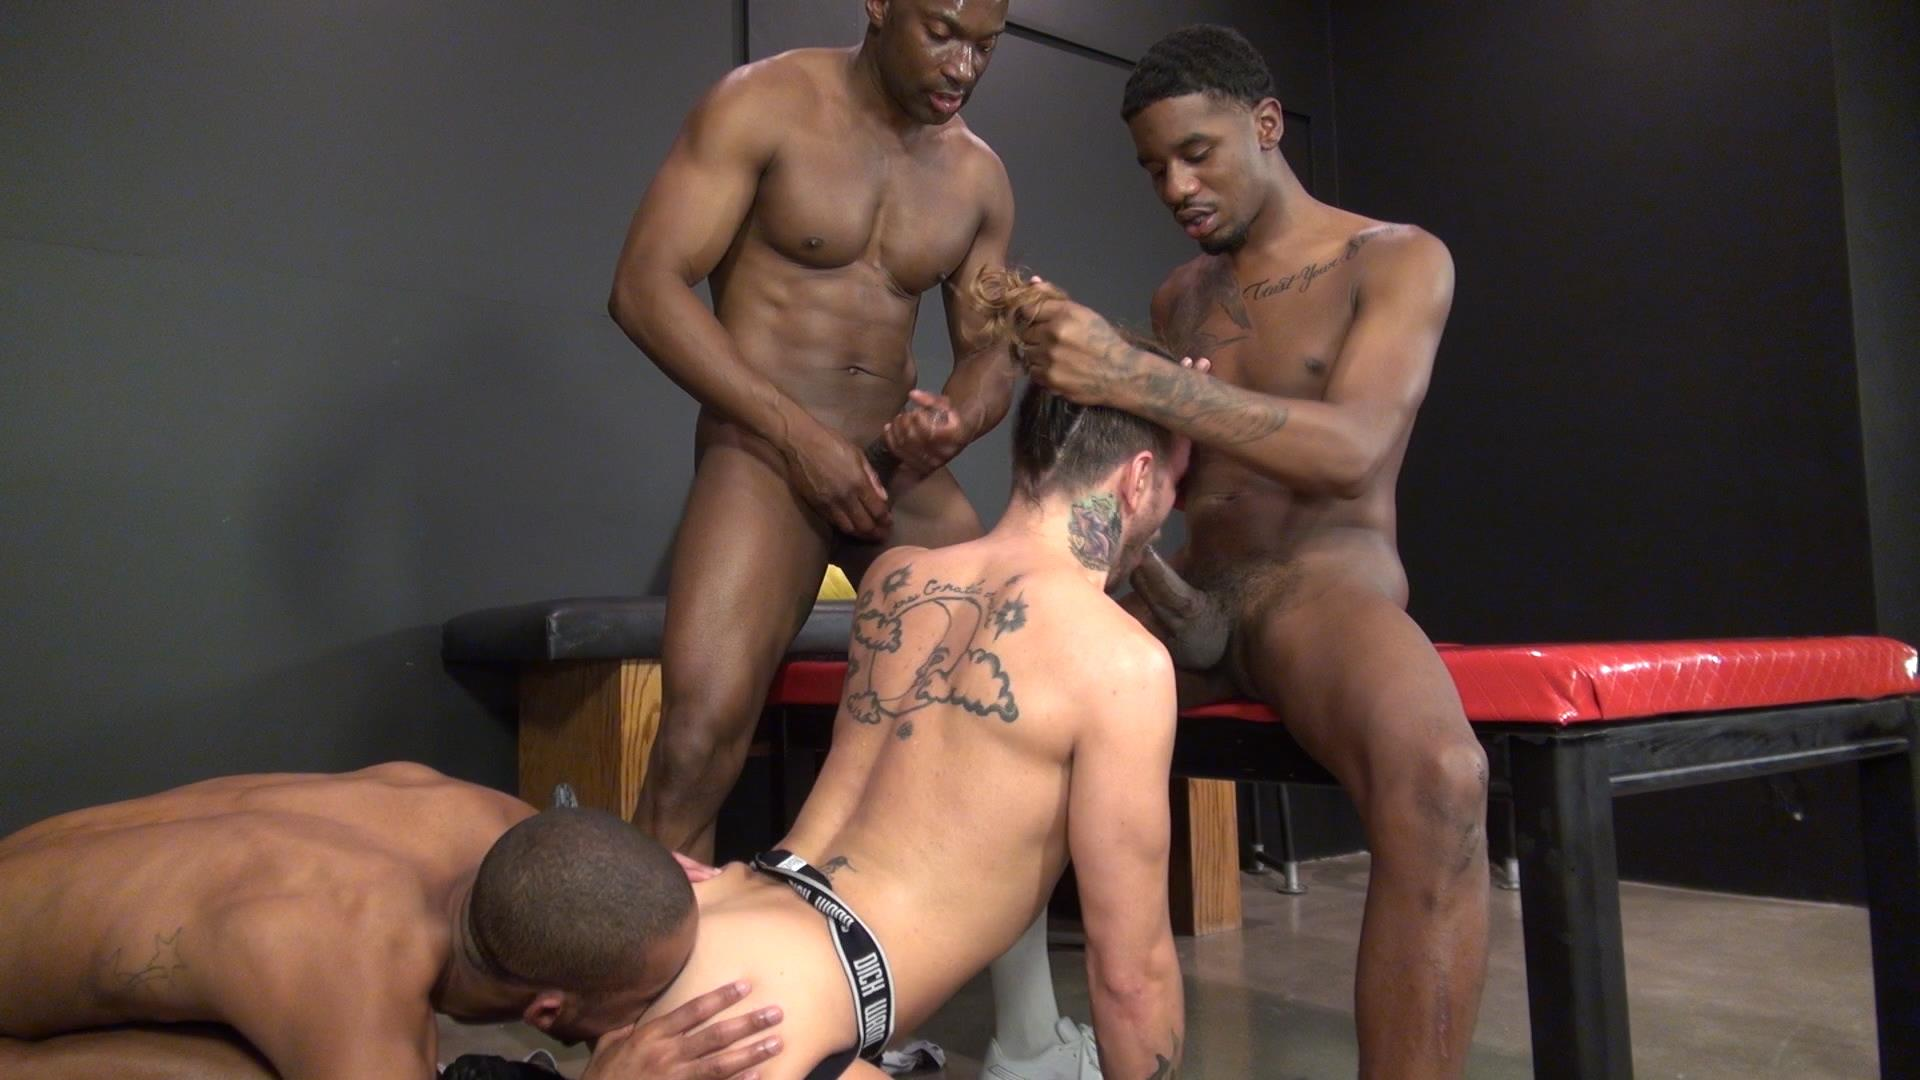 White Gay Boy Gives Interracial Blowjob To Black Stud